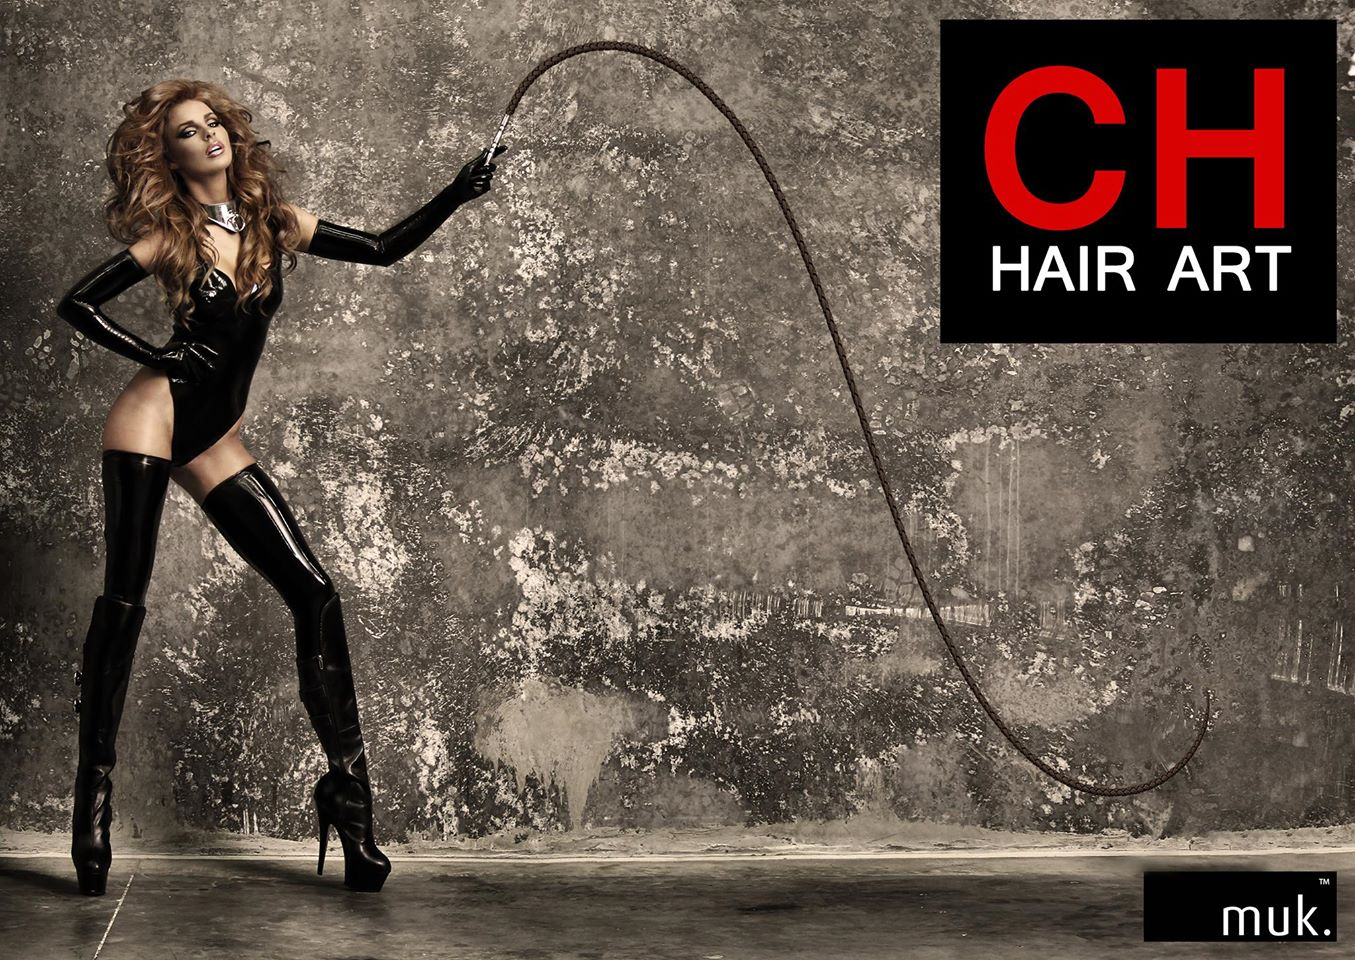 CH Hair Art Cover Image on XploreCyprus